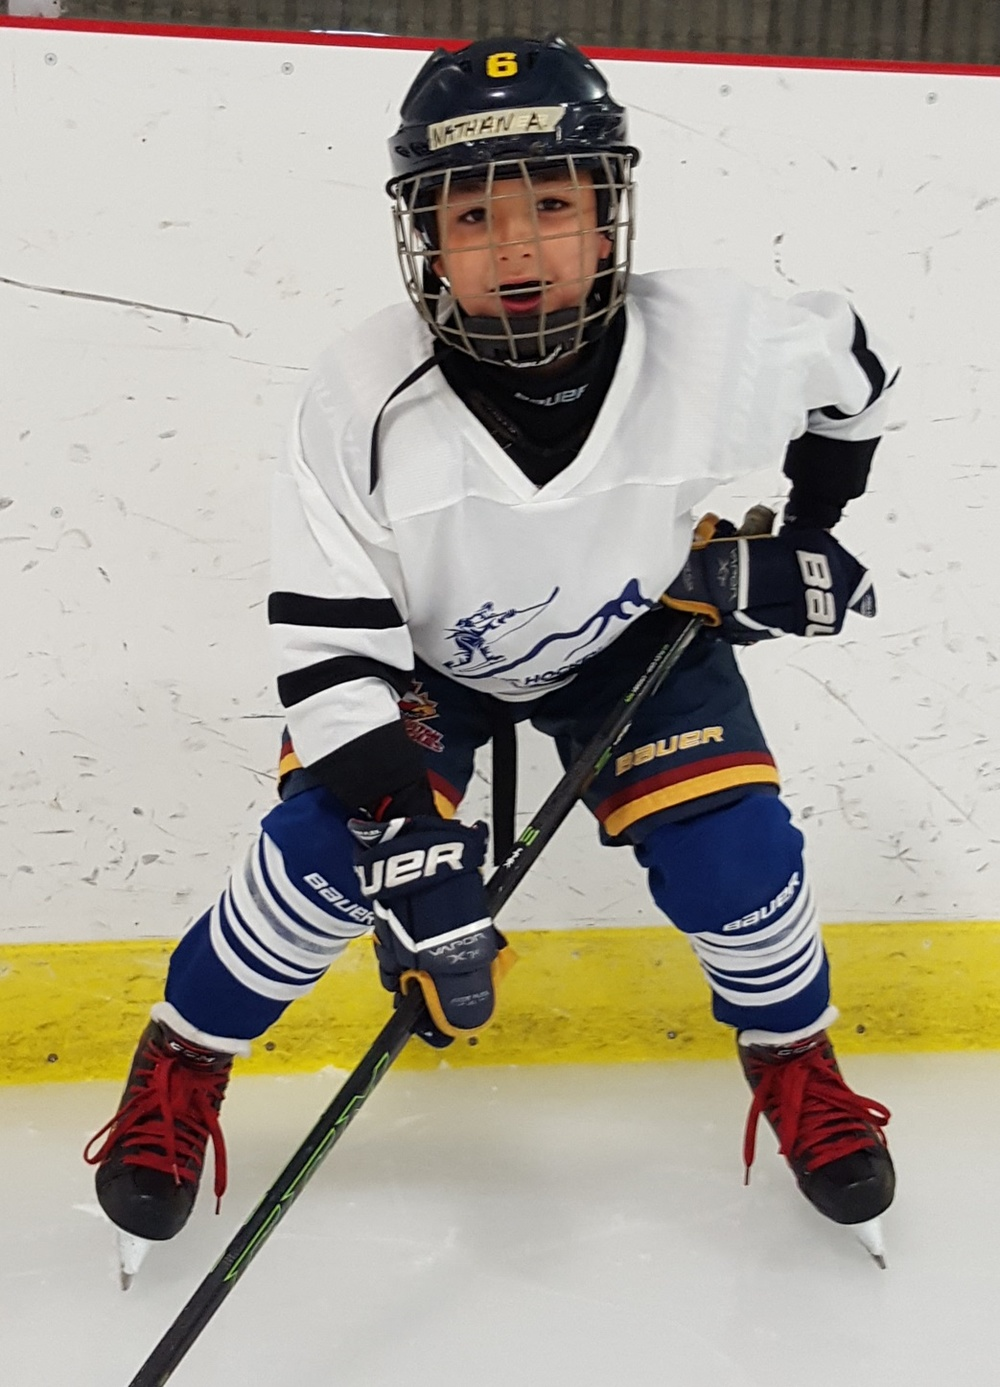 NATHAN ALLEN  Hometown: Burlington, ON Number: 6 Team: Burlington Eagles Atom AA Gold Position: Defence Shoots: Right Favorite Pre-Game Meal: Pasta and salad Favorite Hockey Player: Bobby Orr